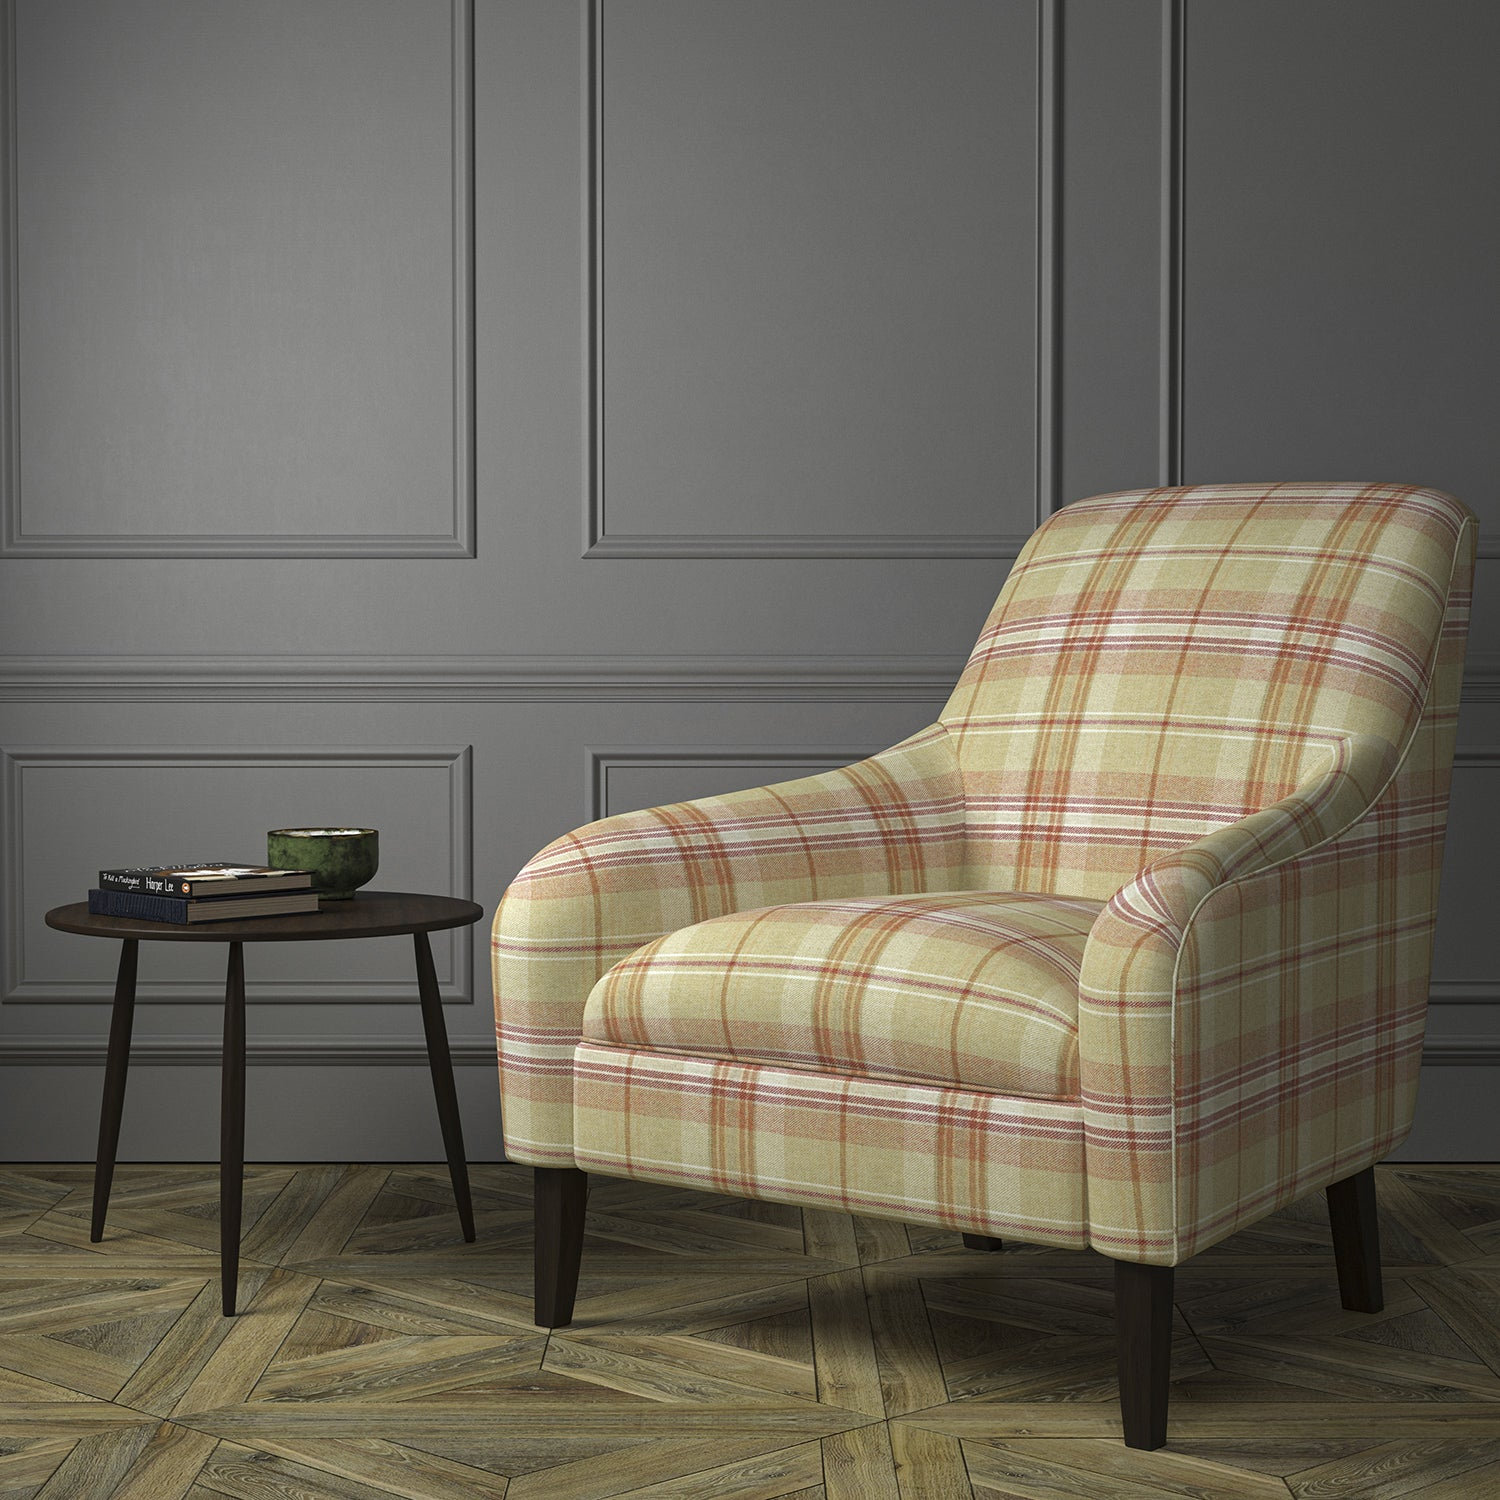 Chair upholstered in a beige and red Scottish wool plaid check fabric